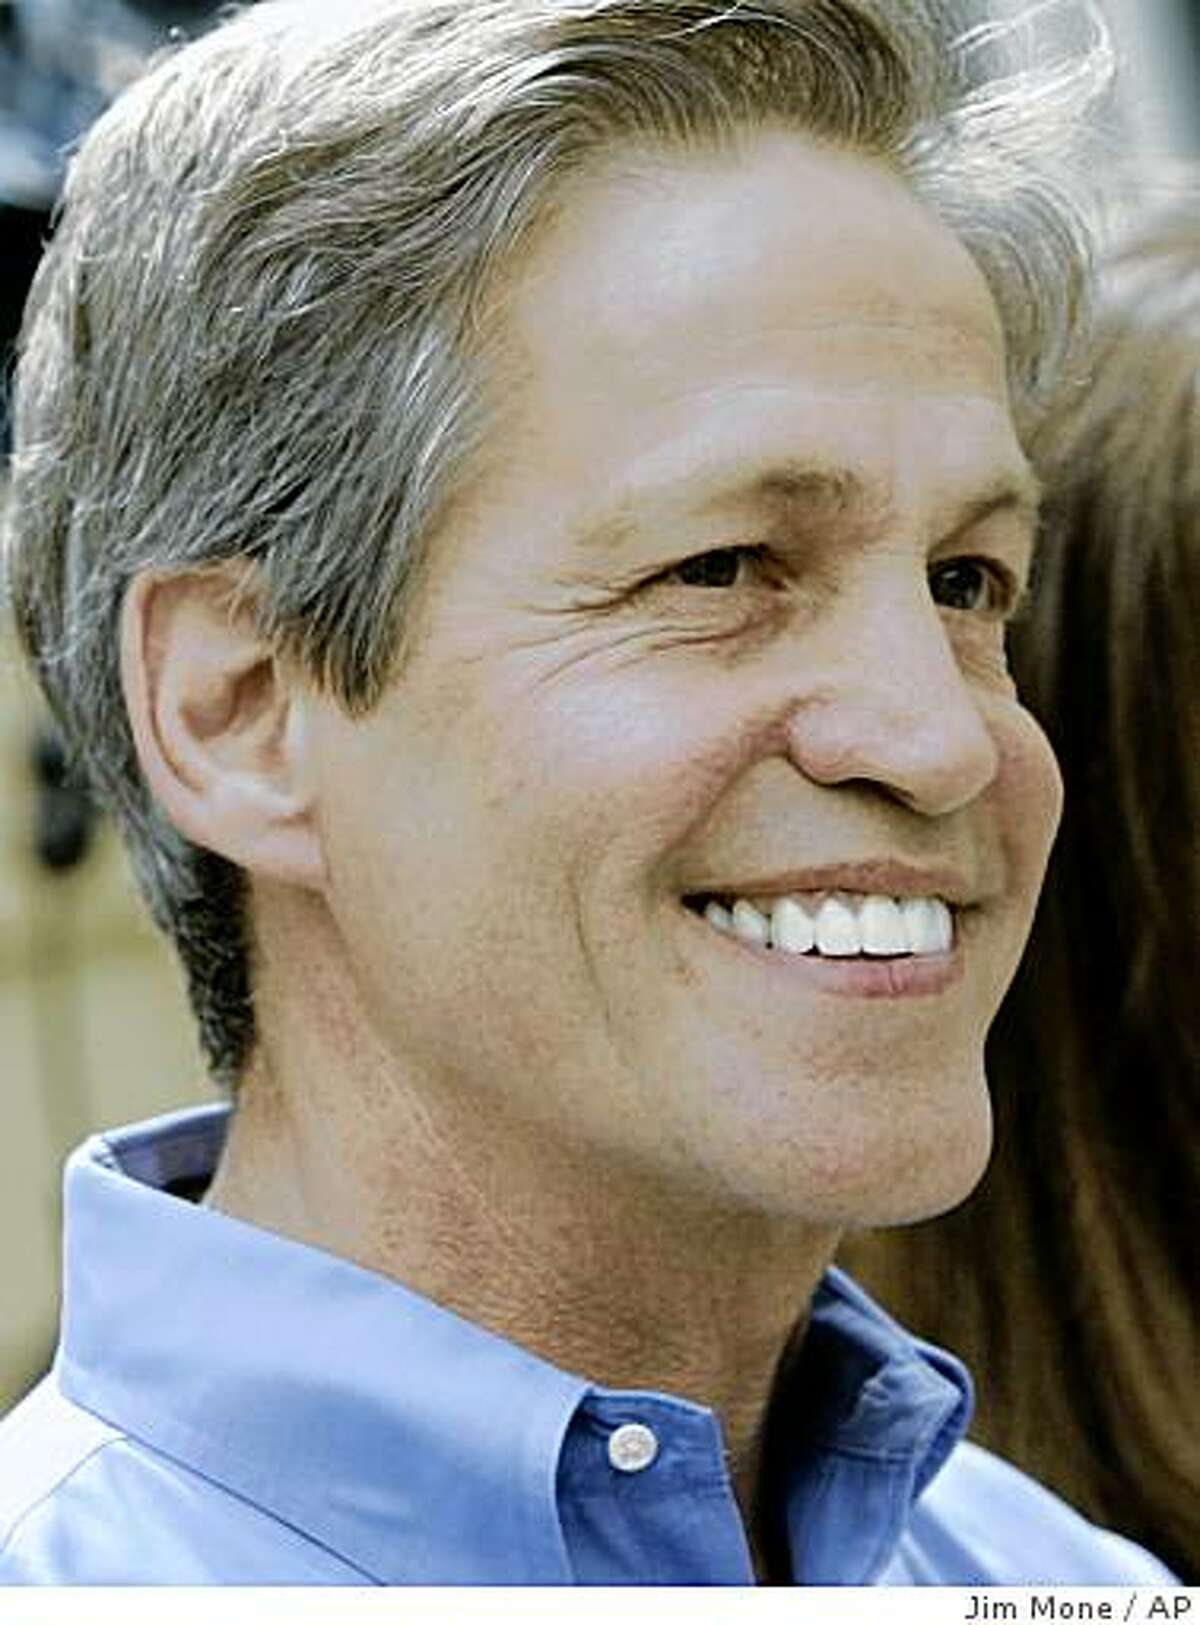 Former Republican Sen. Norm Coleman smiles as he addressed the media Tuesday, June 30, 2009 at his St. Paul, Minn., home after the Minnesota Supreme Court ruled that Democrat Al Franken won the contested U.S. Senate race in Minnesota. (AP Photo/Jim Mone)